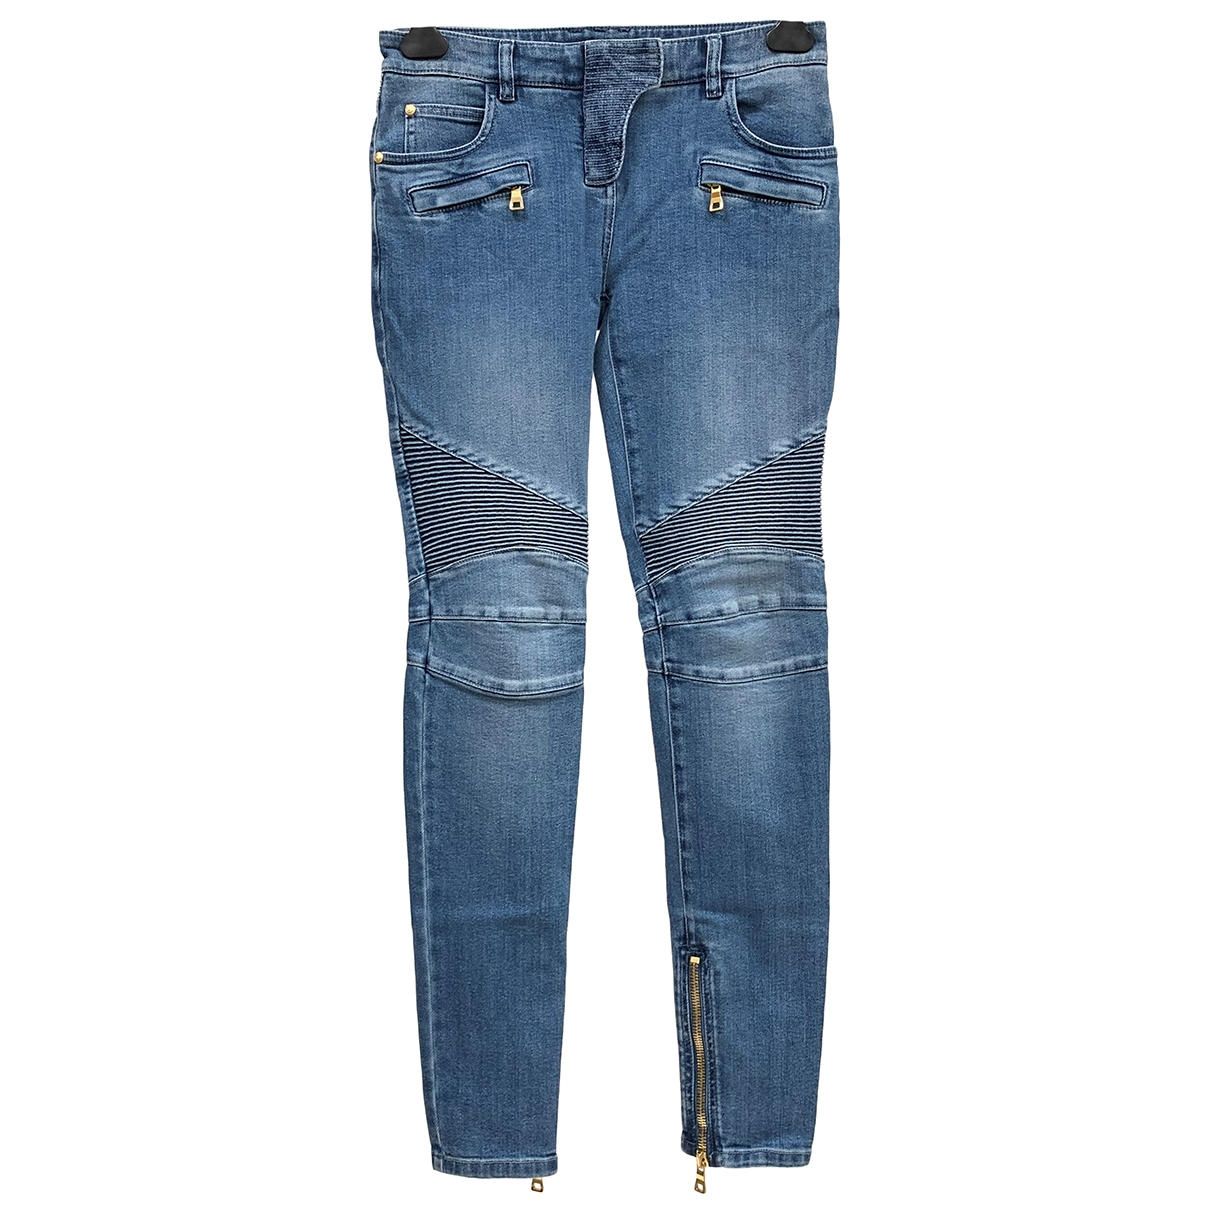 Balmain \N Blue Cotton - elasthane Jeans for Women 38 FR